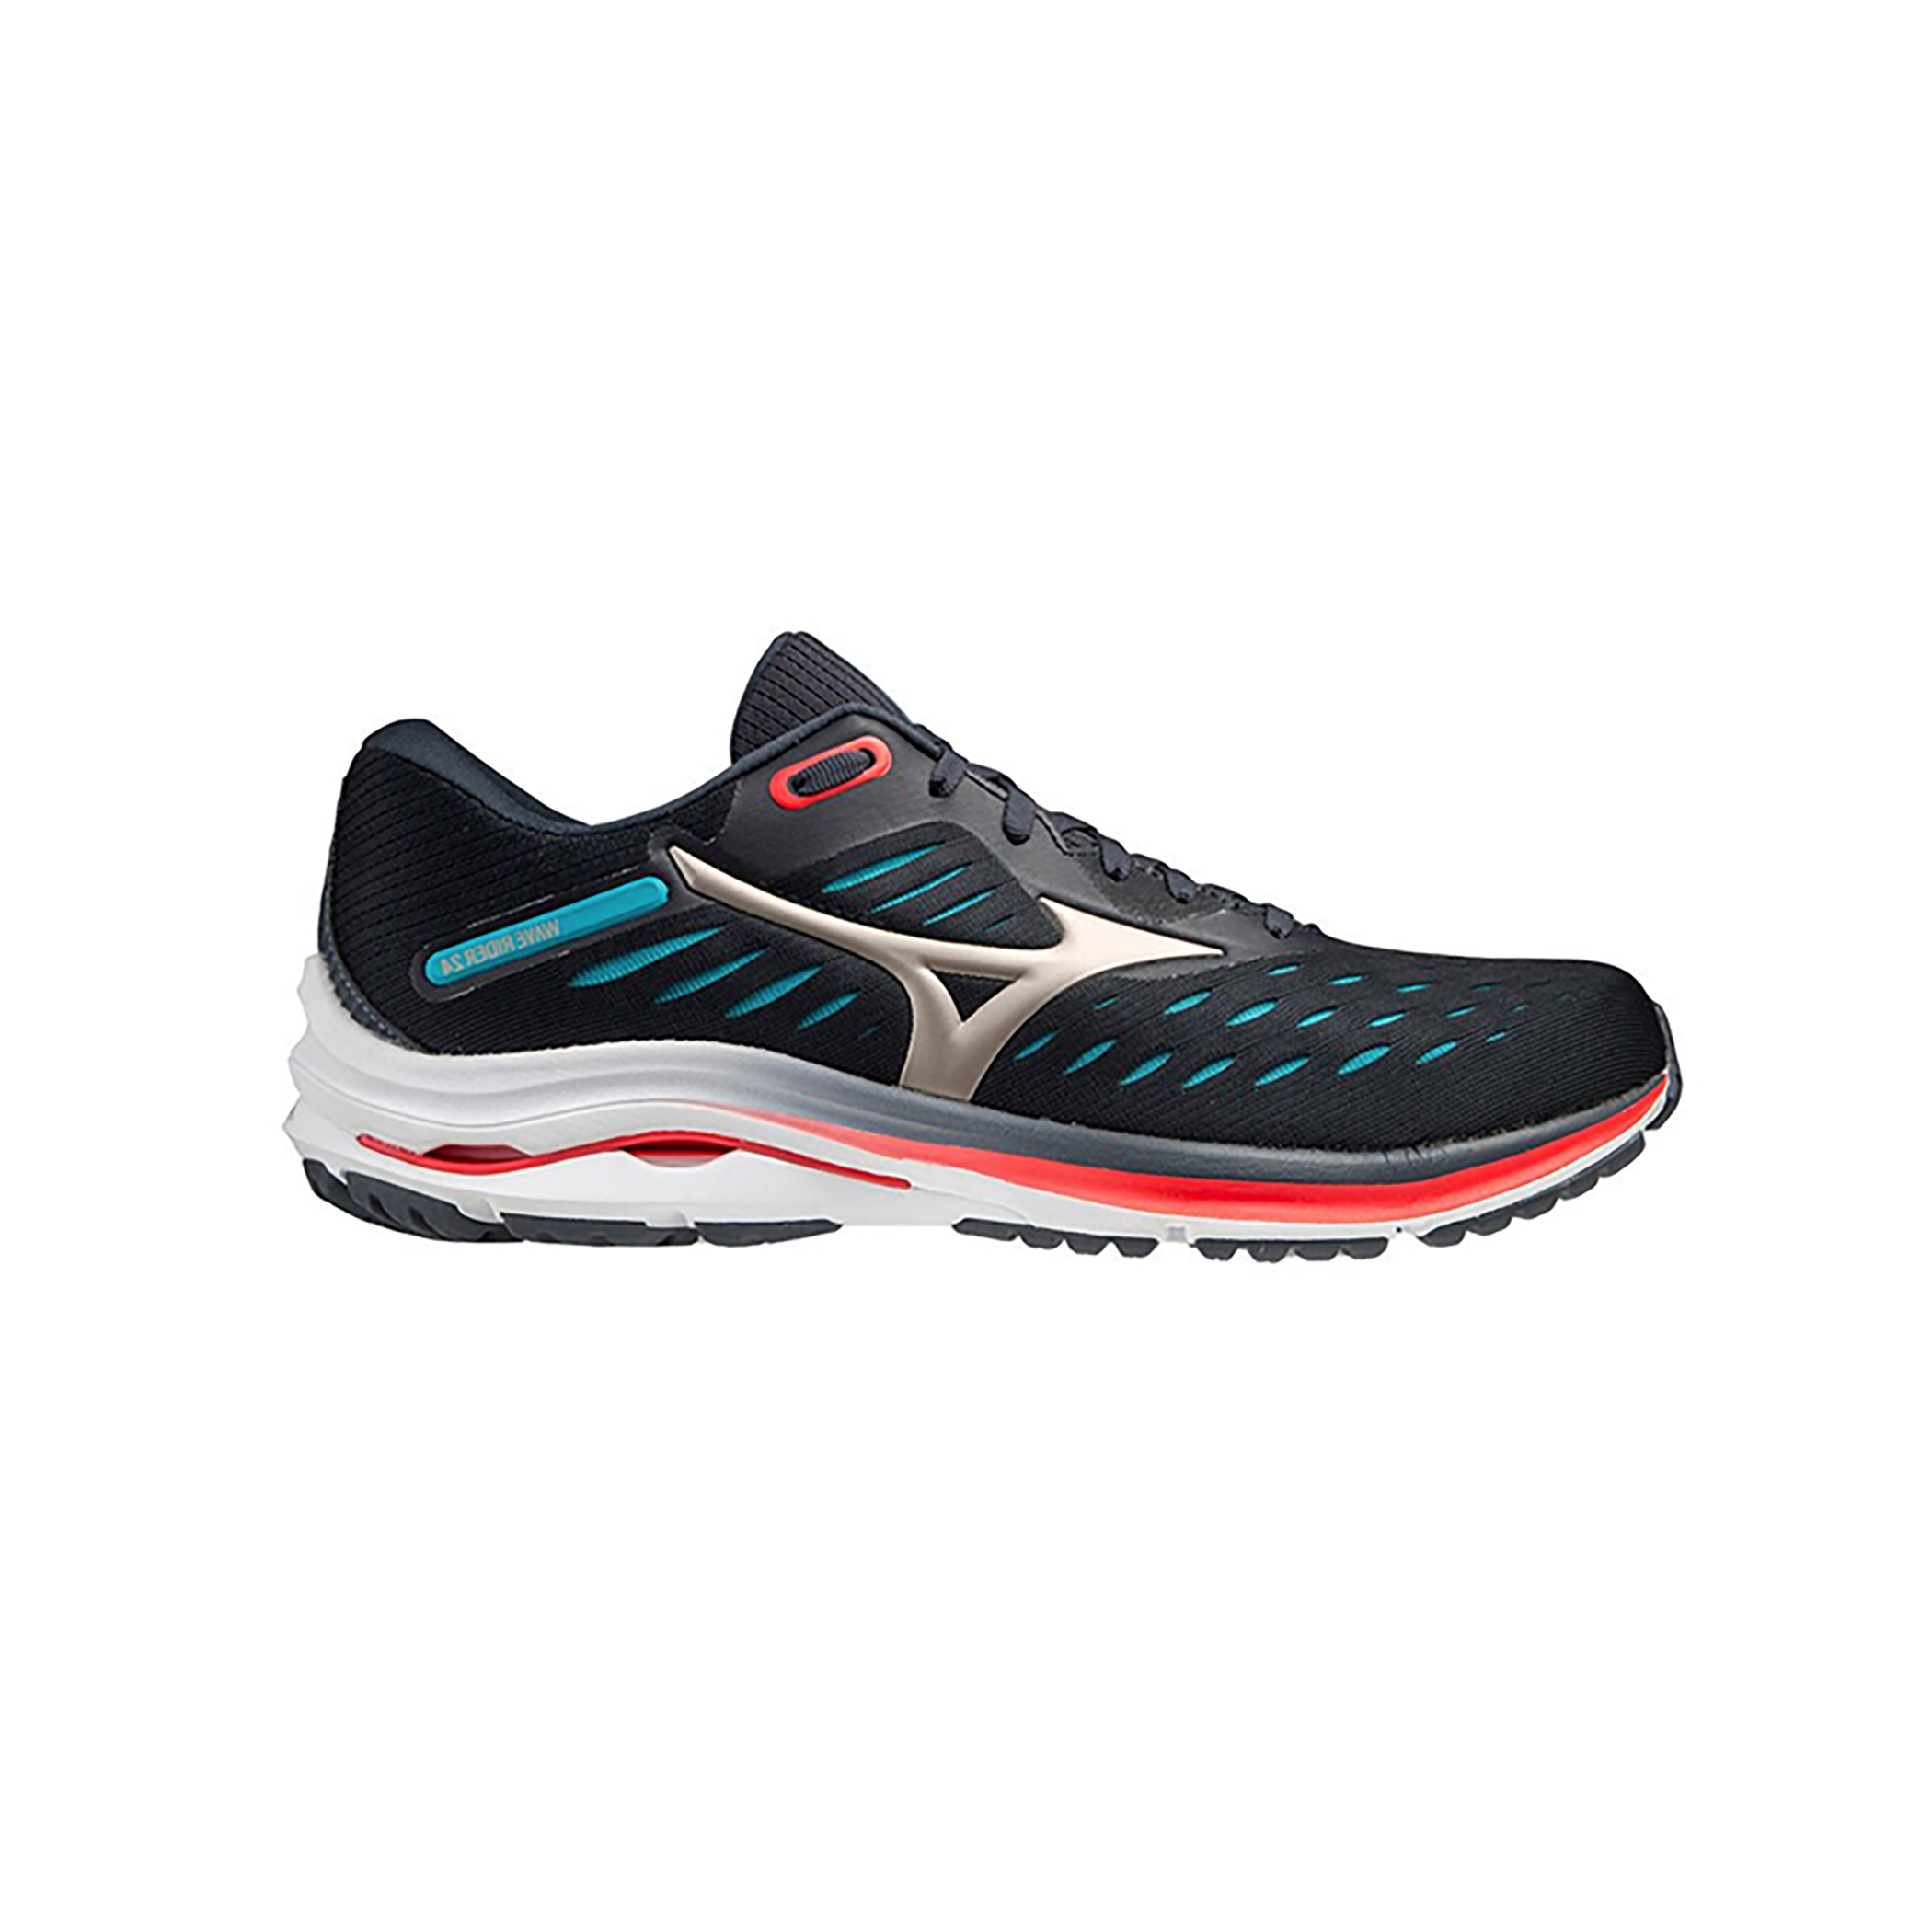 Men's Mizuno Wave Rider 24